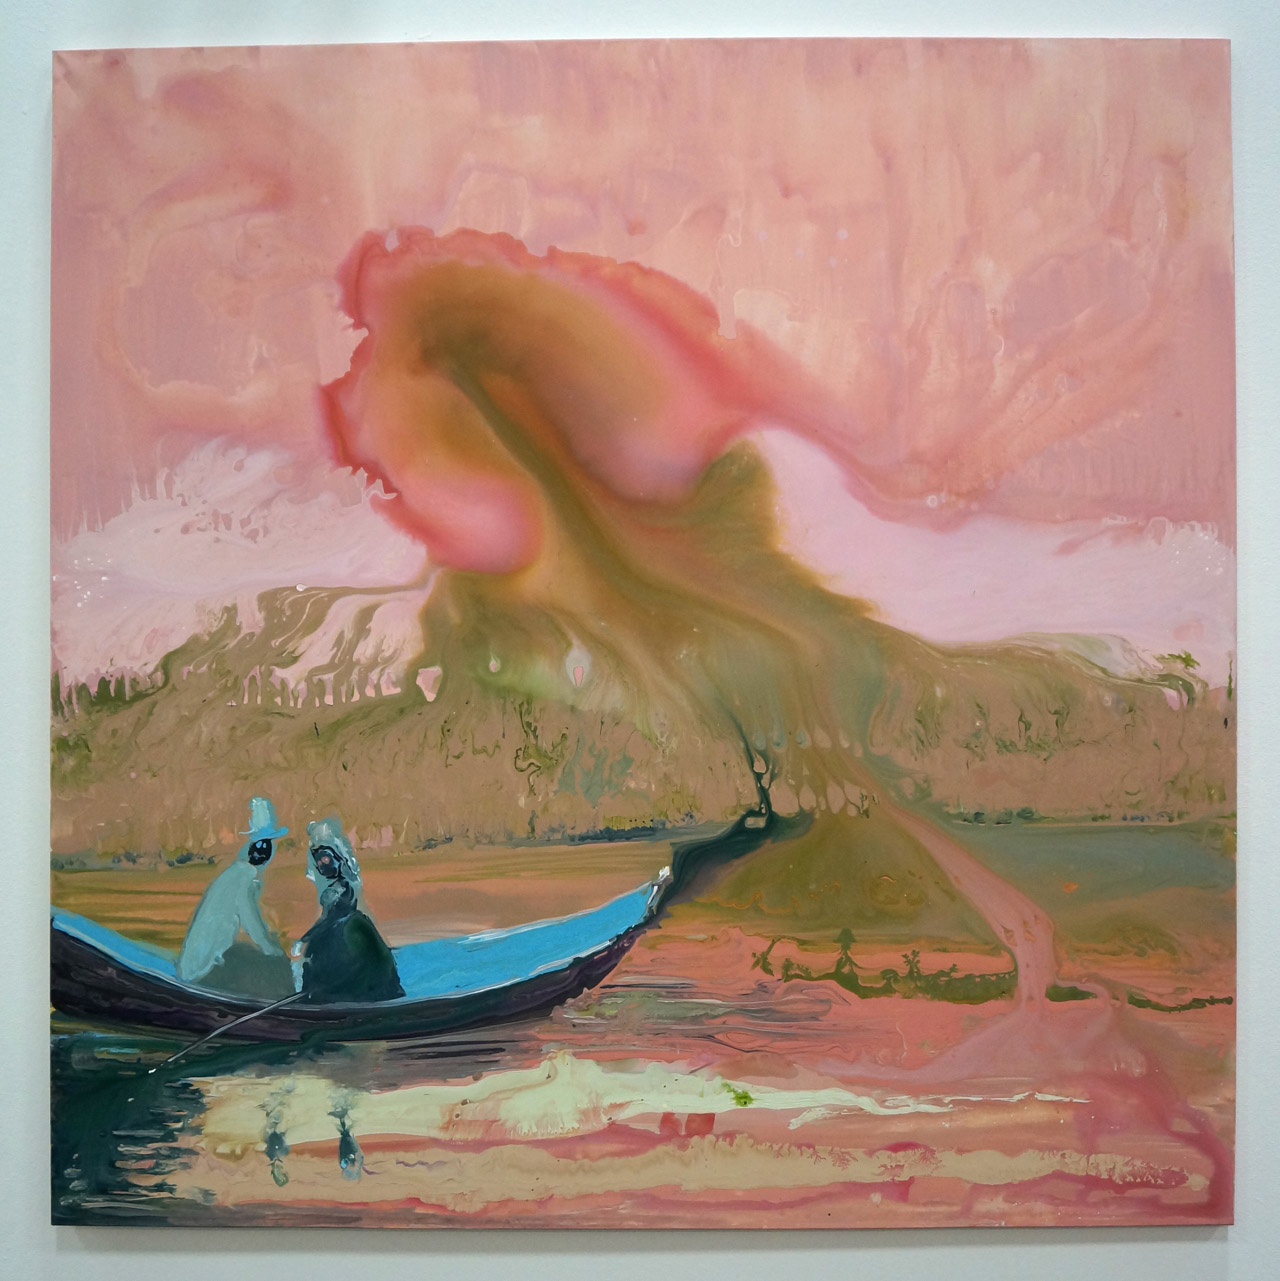 A work by Genevieve Figgs on view at Half Gallery's booth